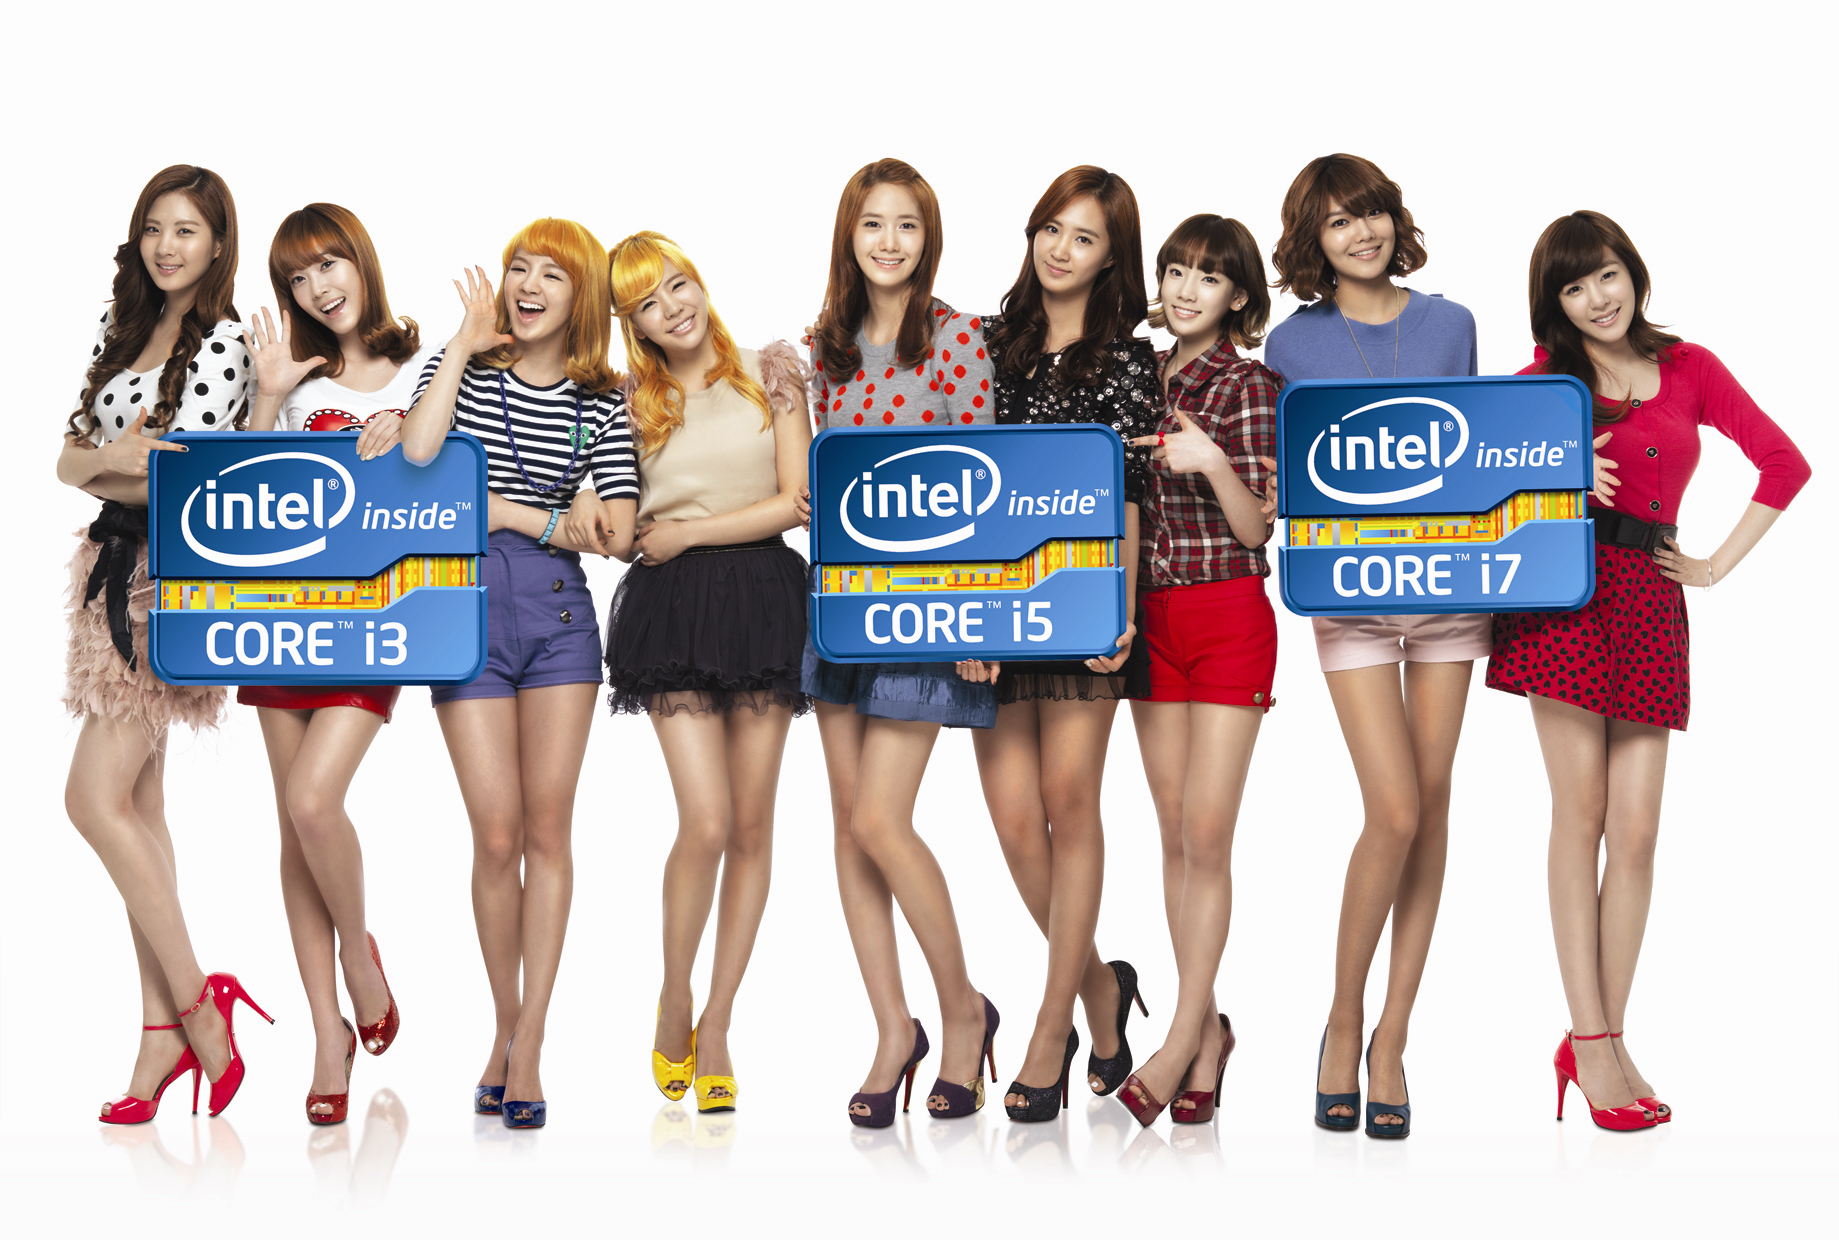 Intel Girls